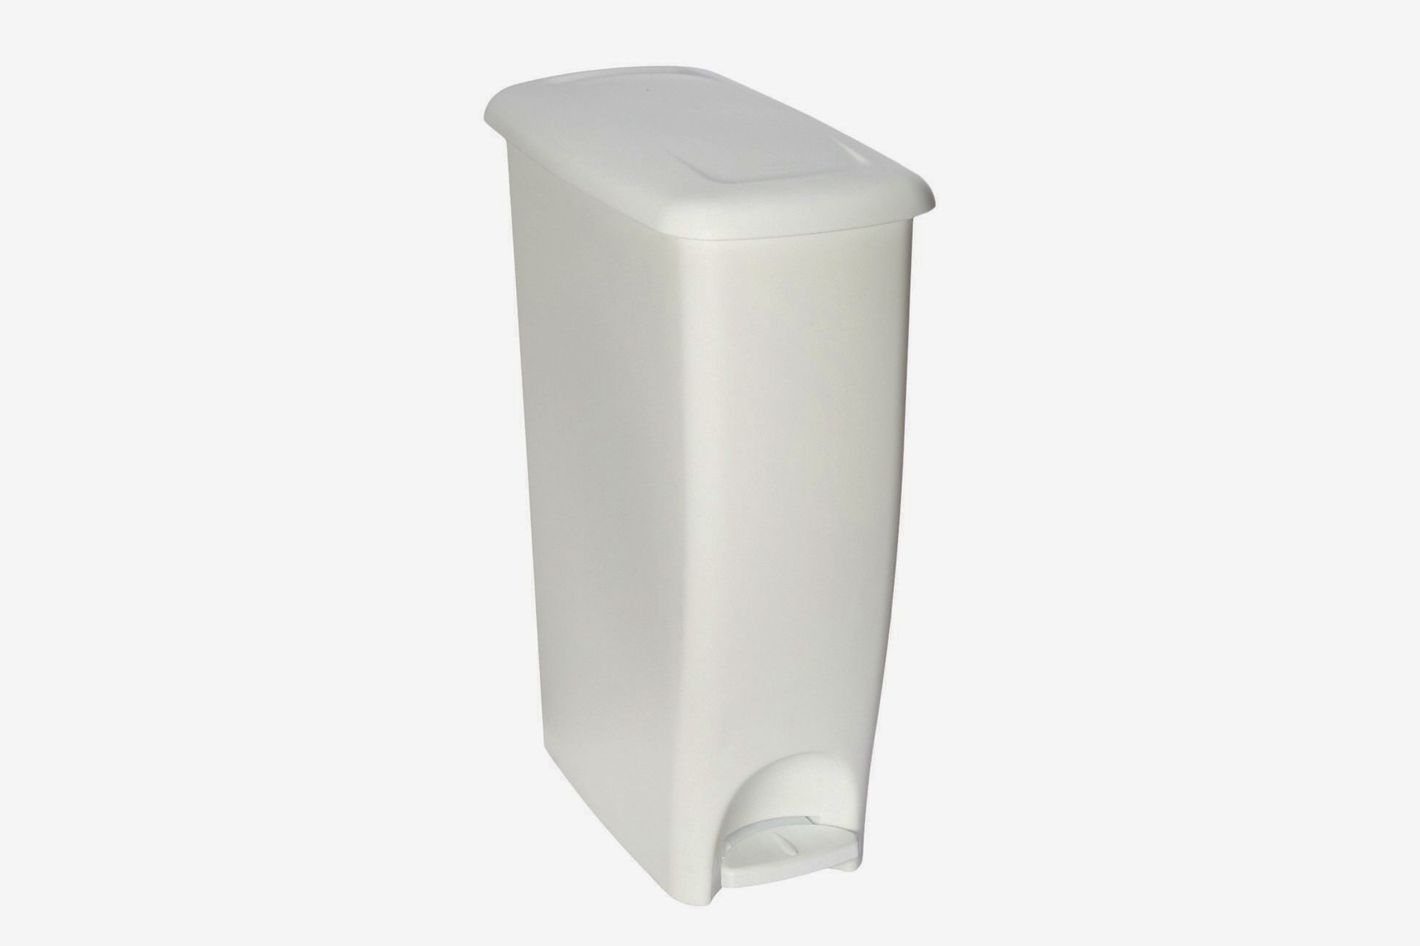 Rubbermaid Home Slim Trash Can 45 Quart